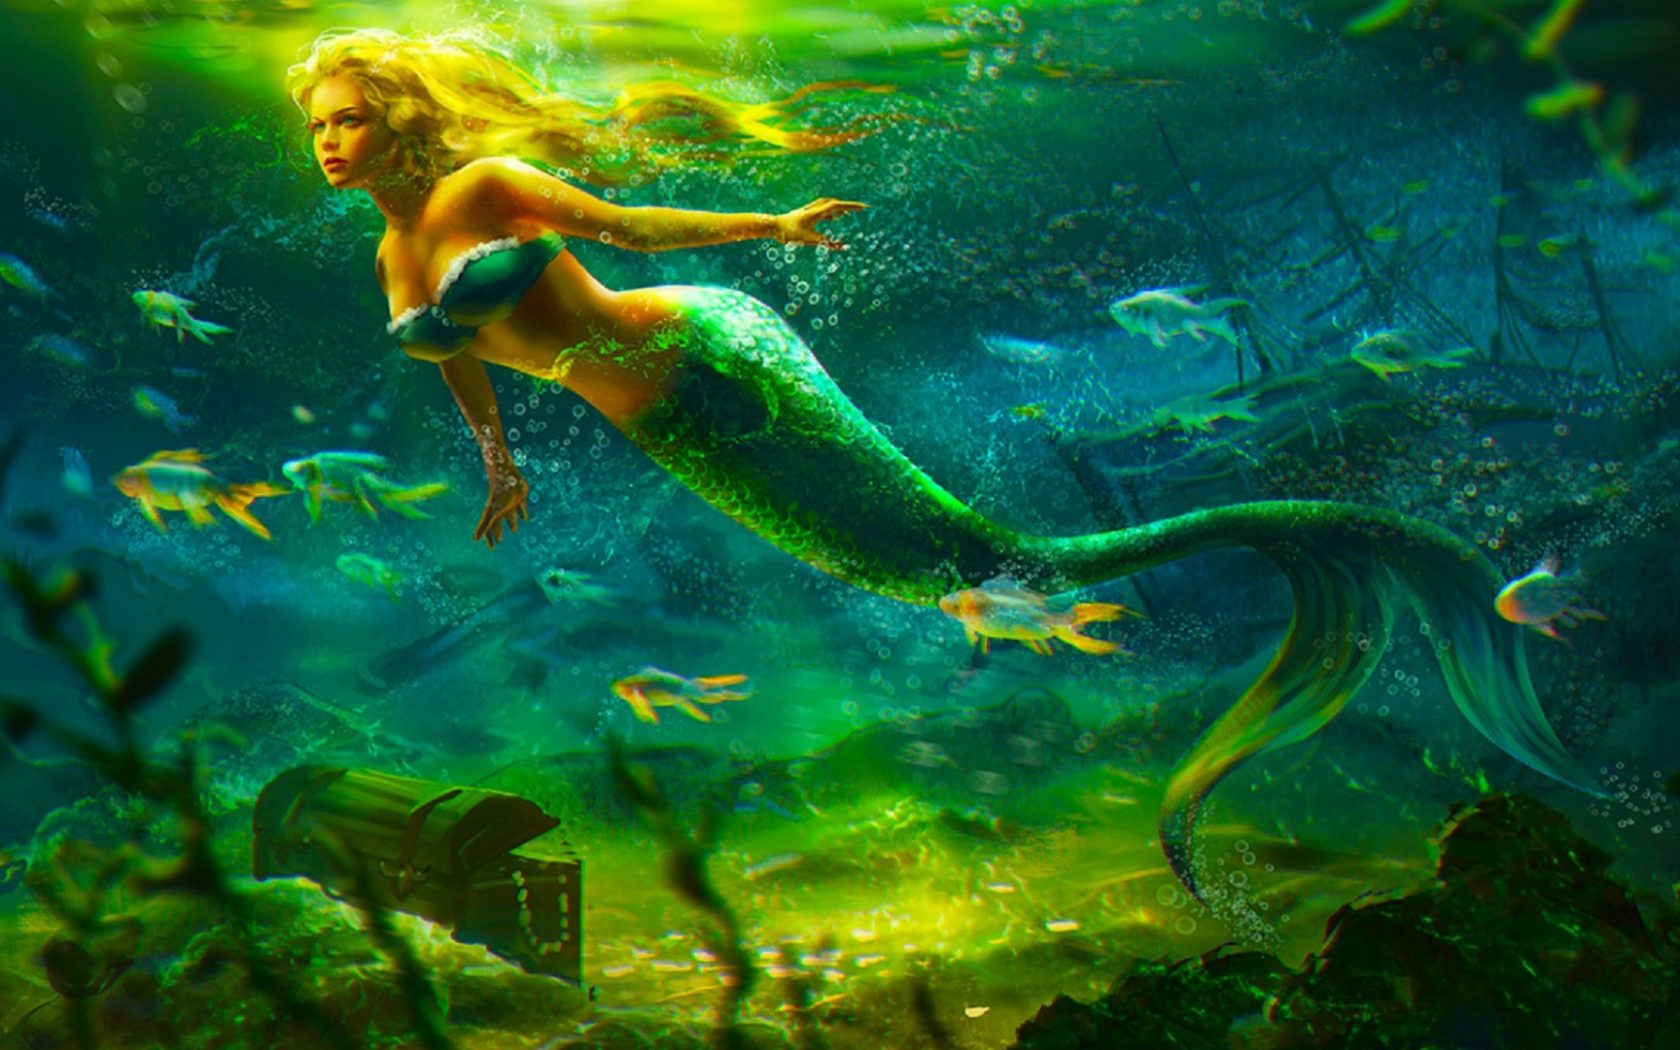 Cute Wallpapers For Your Tablet Mermaid Girl Kingdom Under Water Fantasy Art Hd Wallpaper